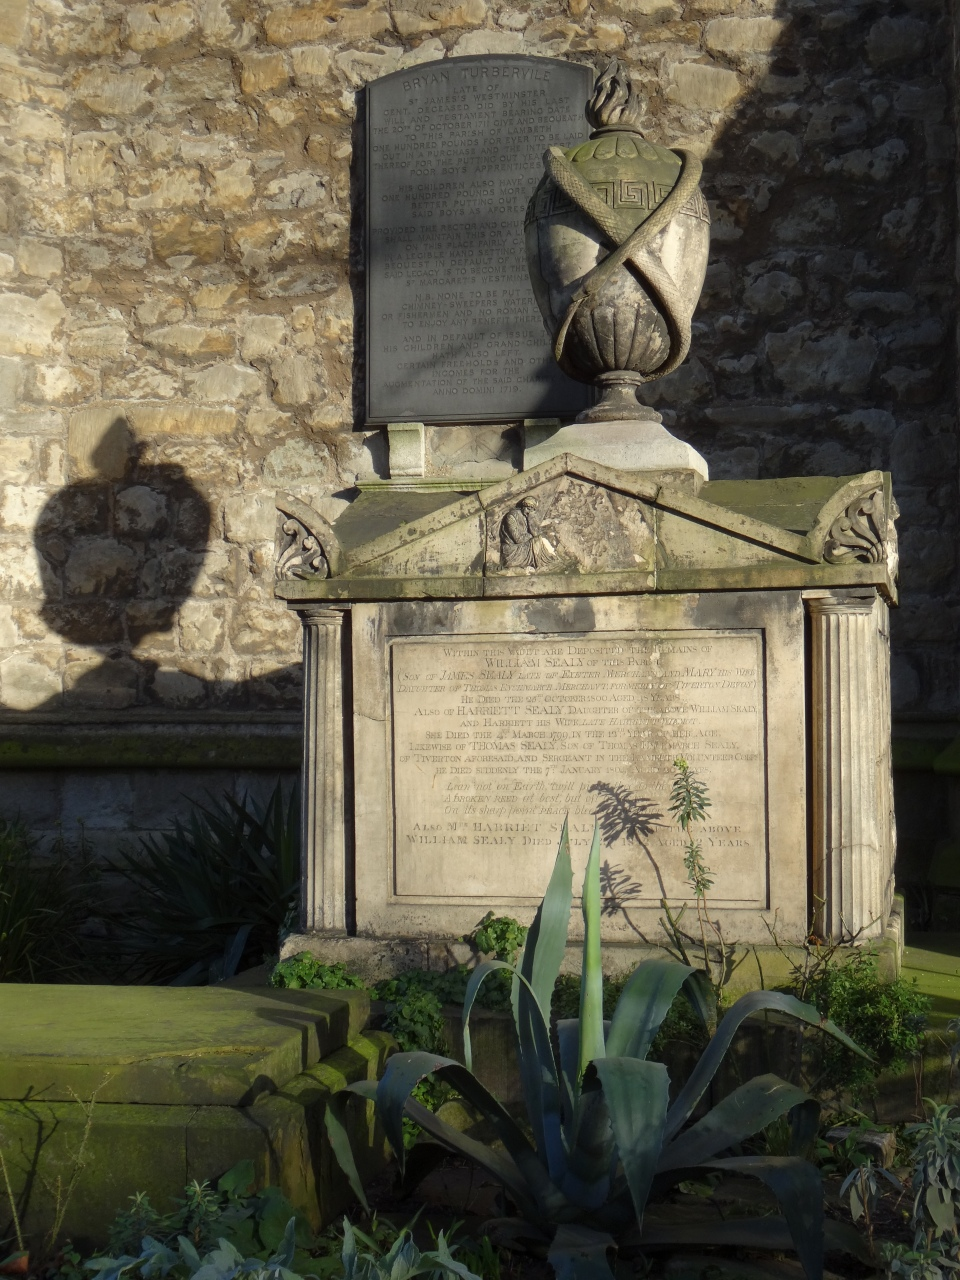 The tomb of the Sealy family in the graveyard of St Mary, Lambeth (now the Garden Museum)